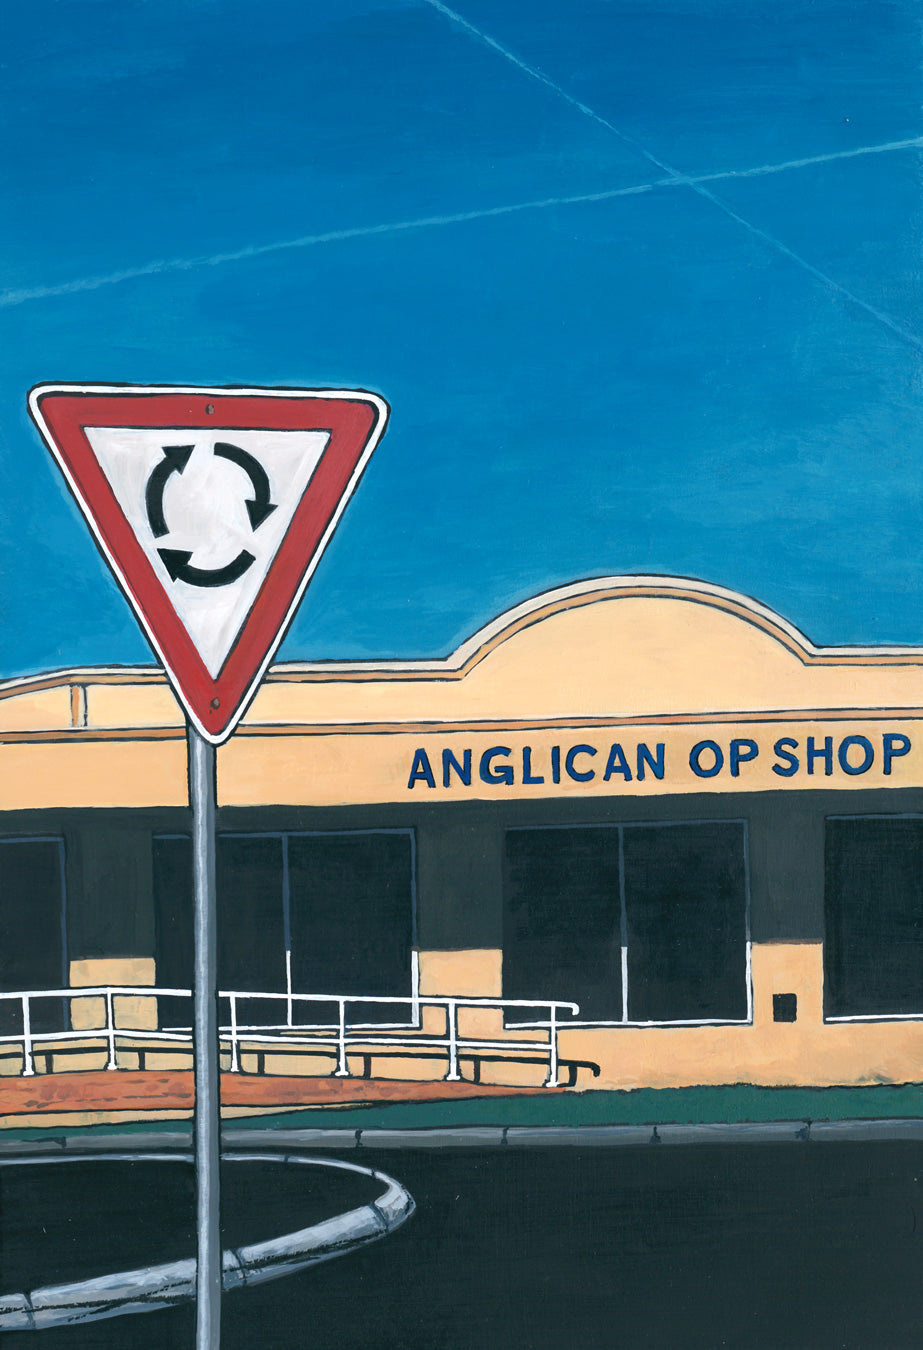 Josh Galletly Artwork. Painting of the Anglican Op Shop in Ballina, NSW Australia